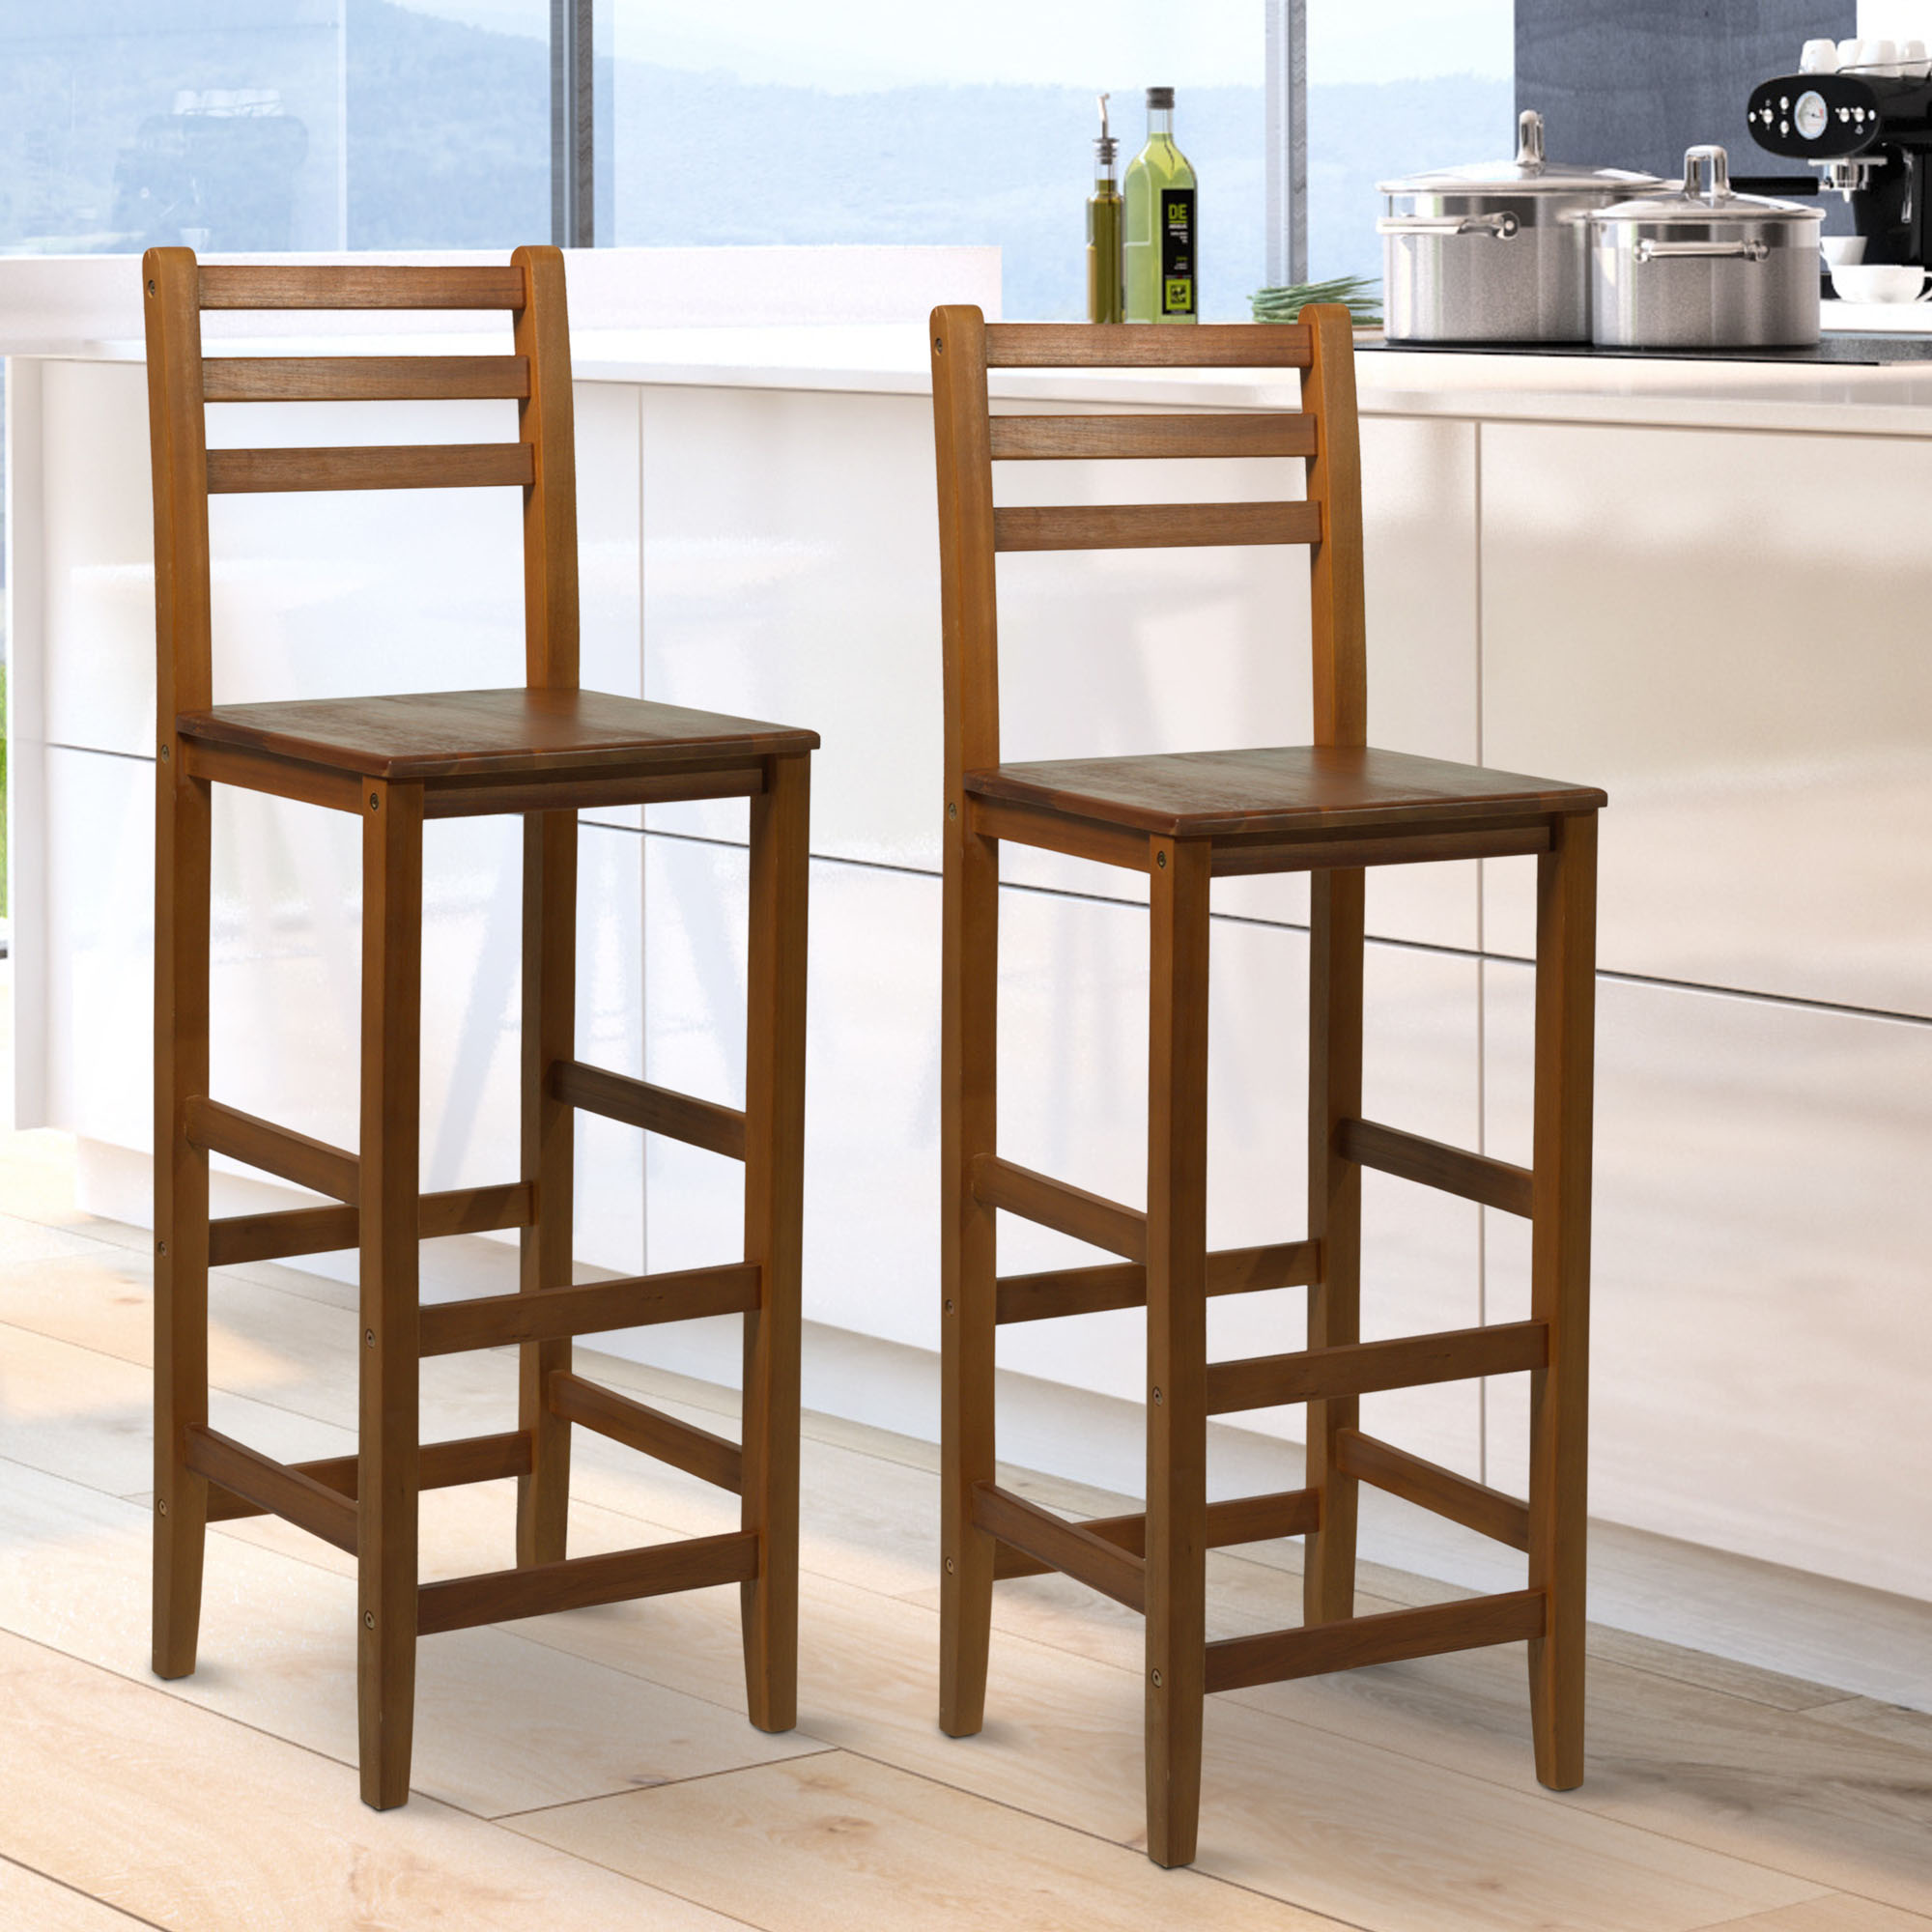 Bar Stool Chairs Details About 2pc 43